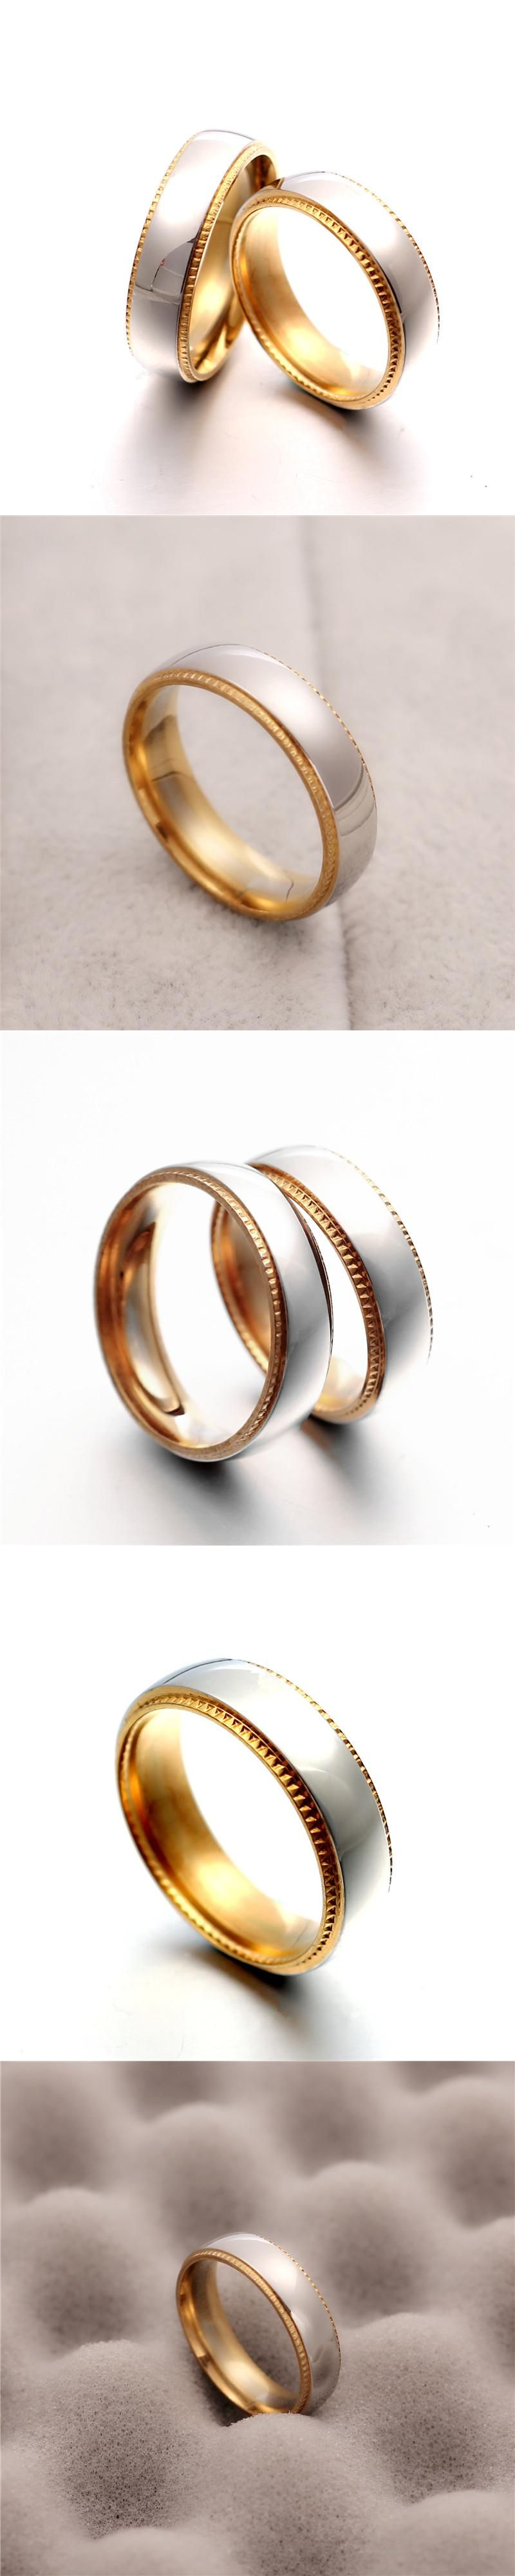 hot movie mens finger rings the one ring titanium stainless steel gold ring for mens gifts wedding men jewelry - The One Ring Wedding Band